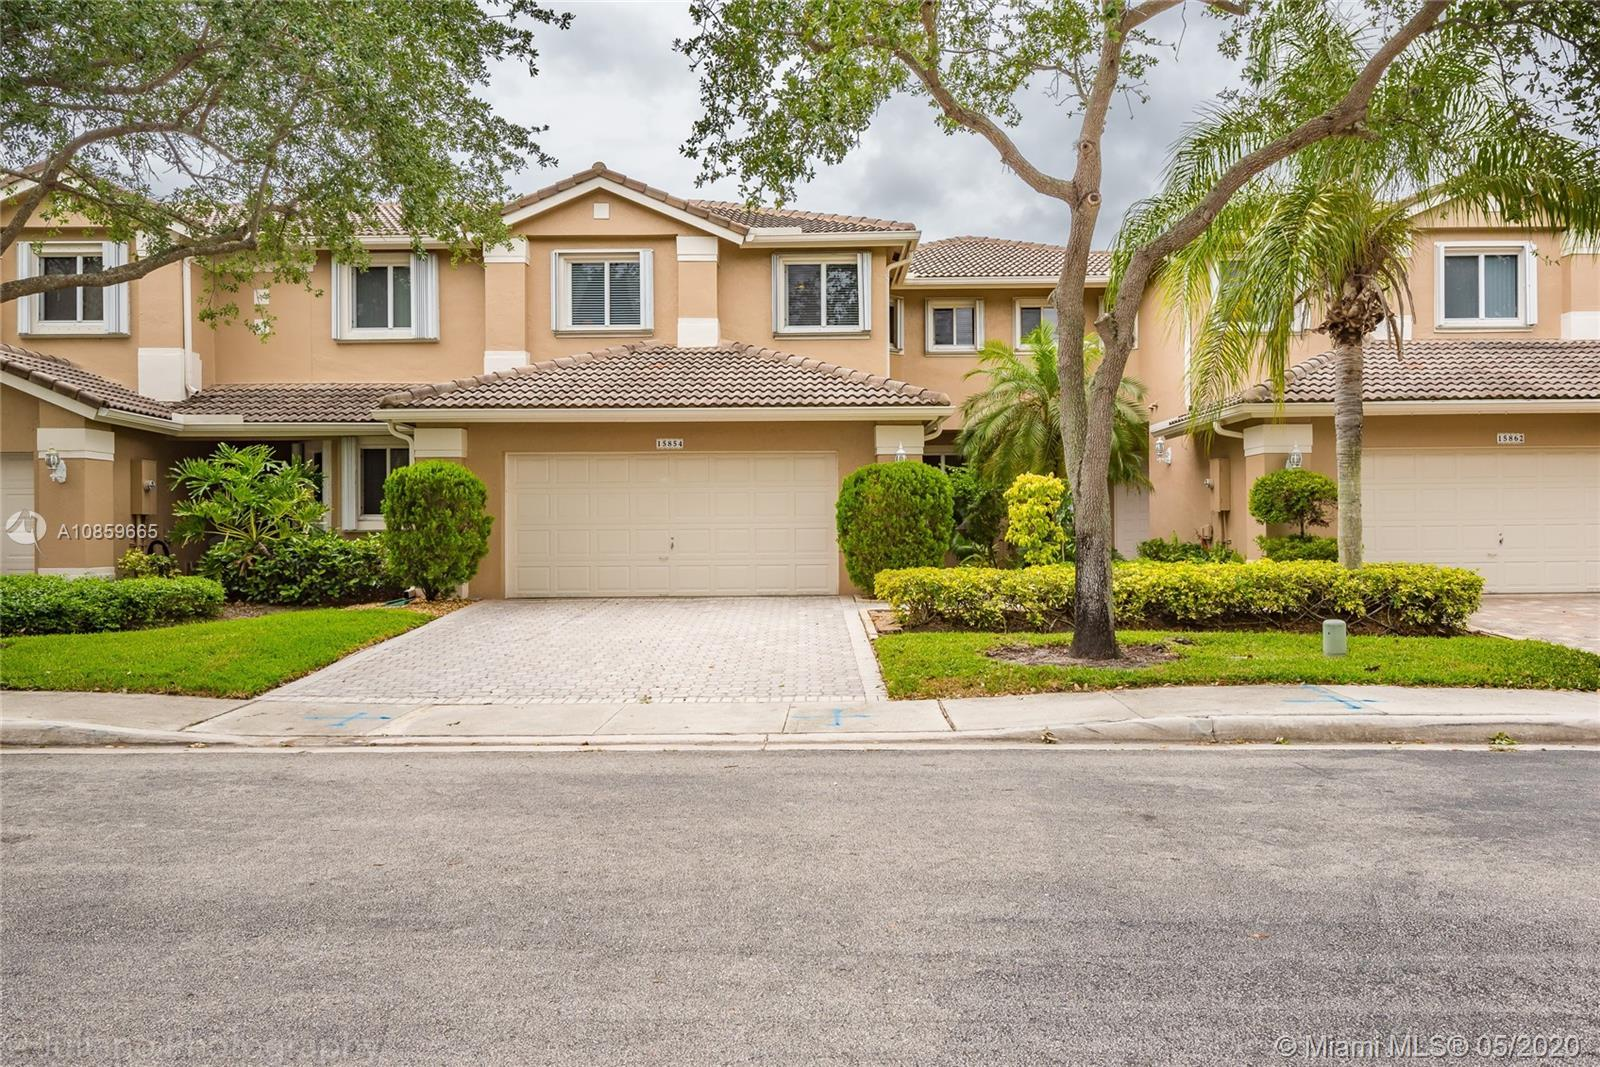 DECORATOR'S DELIGHT!!! IMPECCABLE SPACIOUS TOWNHOME IN OPTIMAL CONDITION. LOCATED IN DESIRABLE GATED